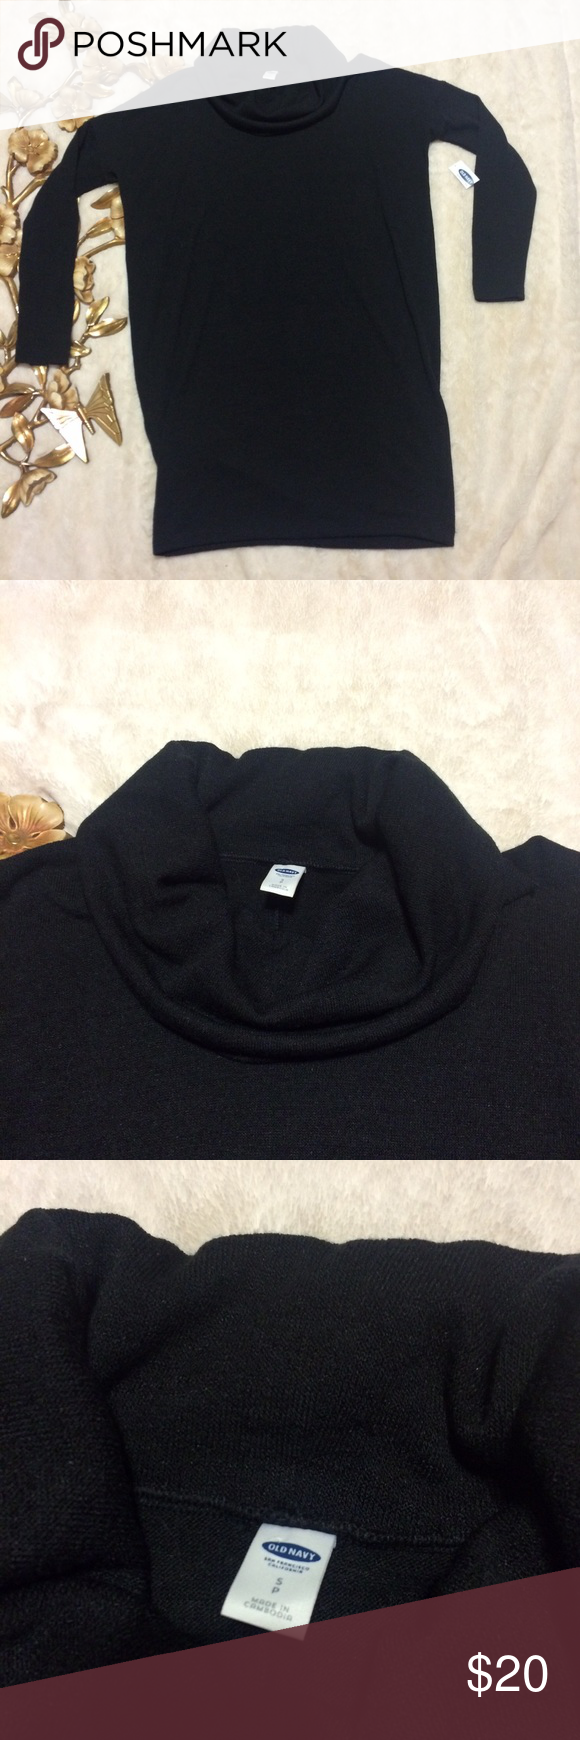 NWT Old Navy Cowl Neck Coco Black NWT Old Navy Cowl Neck Coco ...